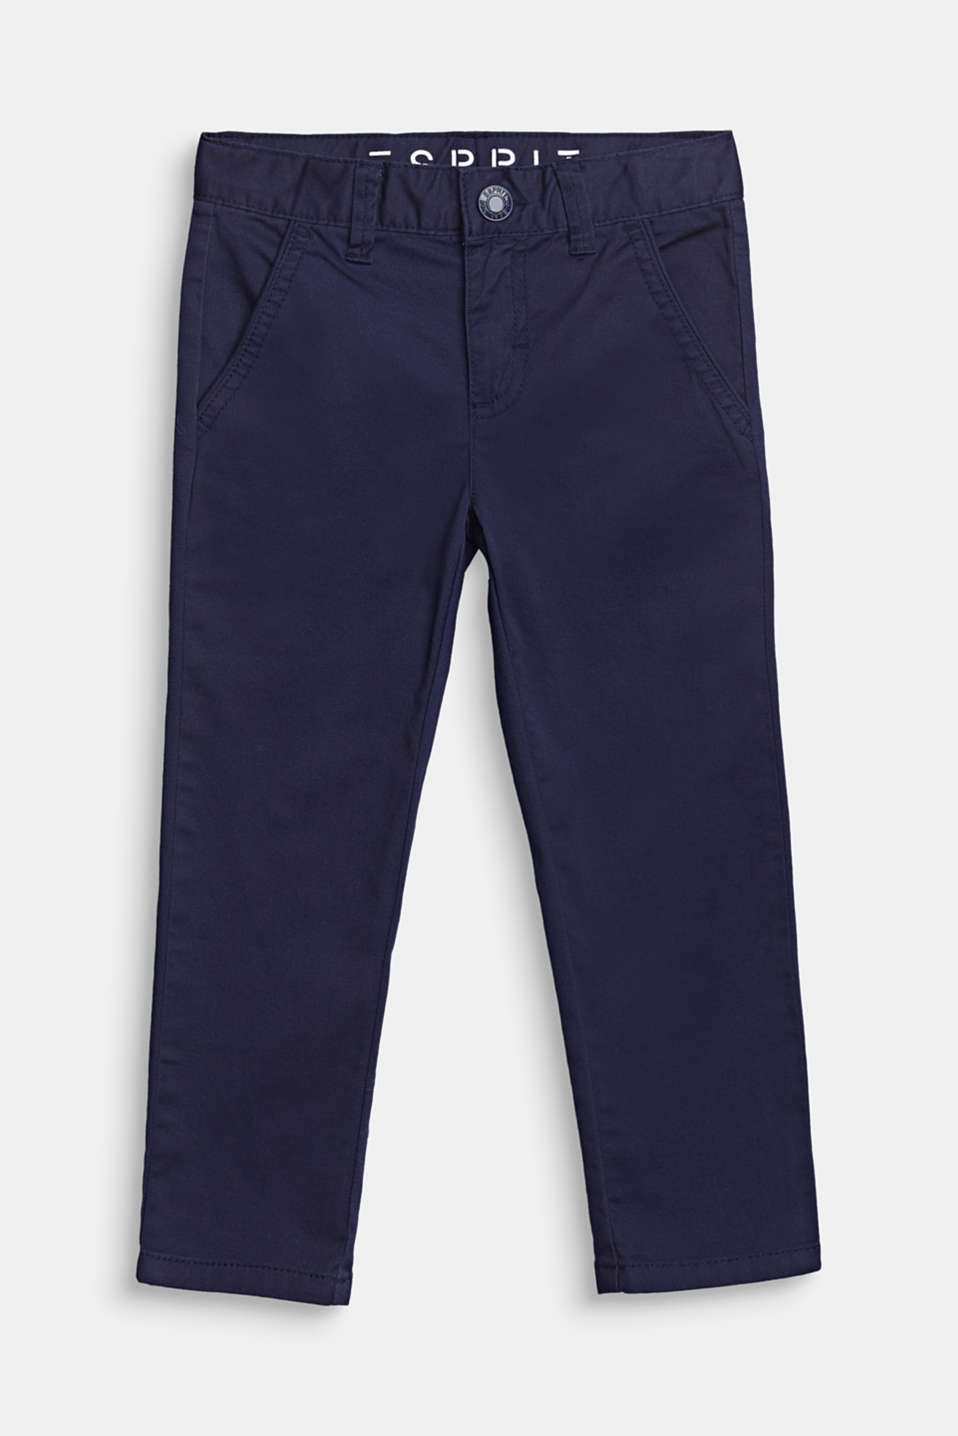 Esprit - Chinos with adjustable waistband, 100% cotton